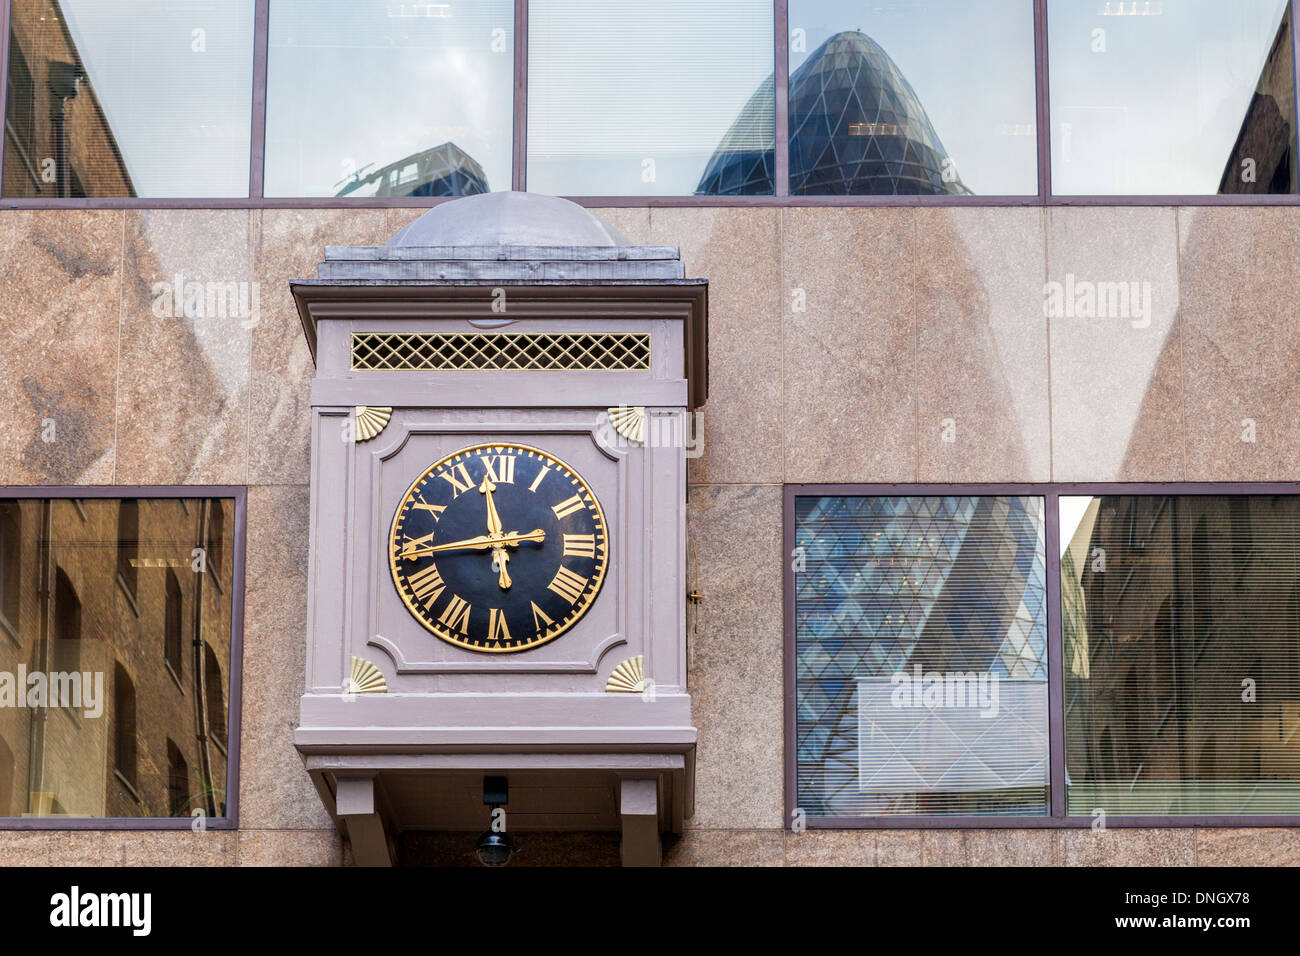 Clock with gold Roman numerals and reflection of 'The Gherkin' in a window at Devonshire Square, Spitalfields, London - Stock Image